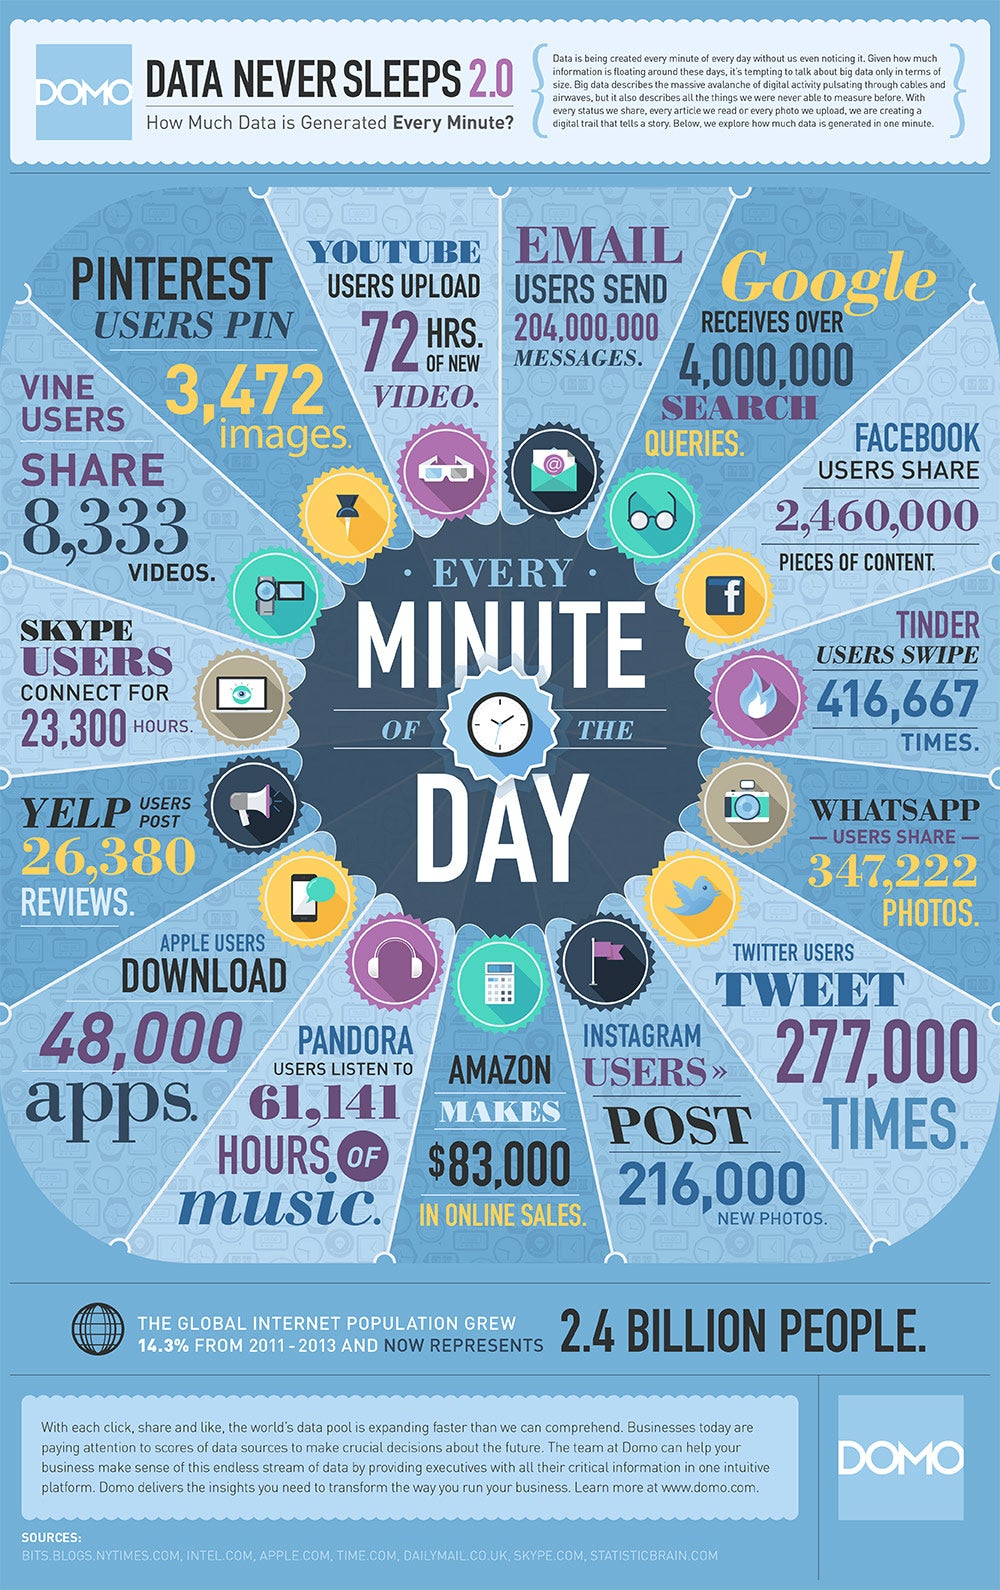 How Big Data Helps Us Keep Pace (Infographic)